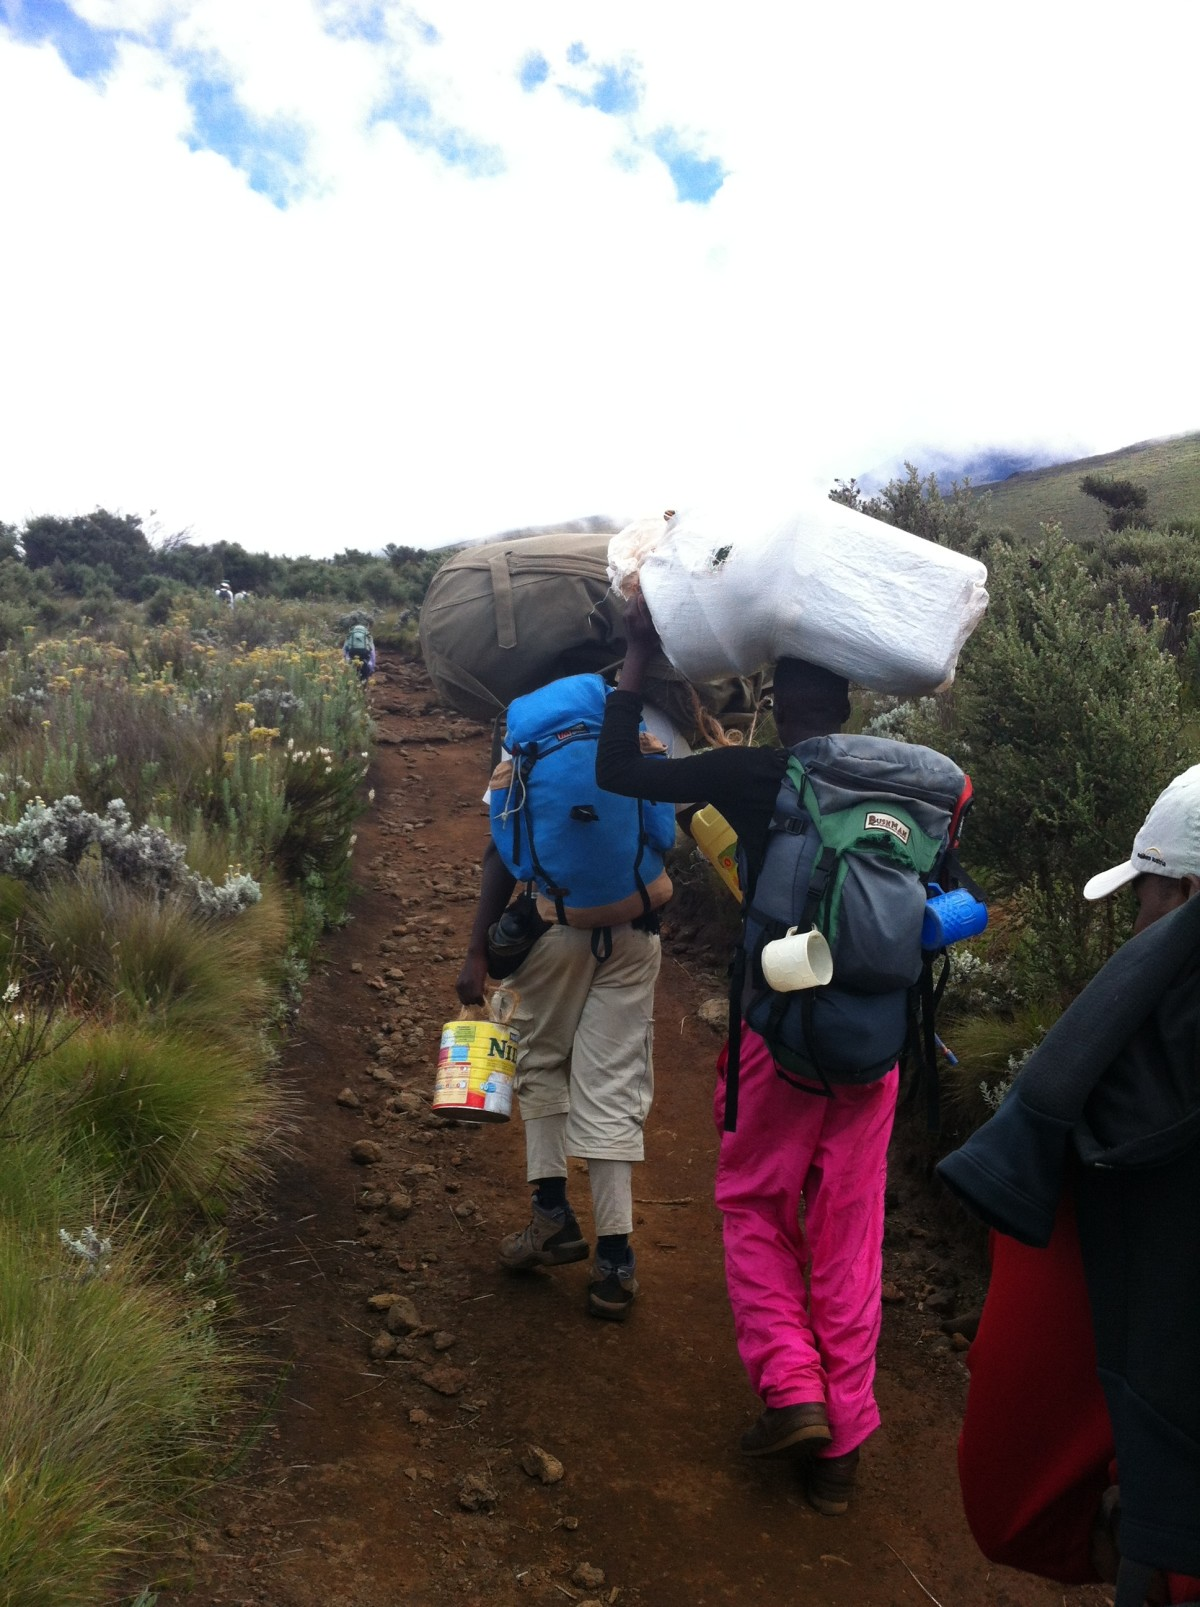 kilimanjaro carrying gear